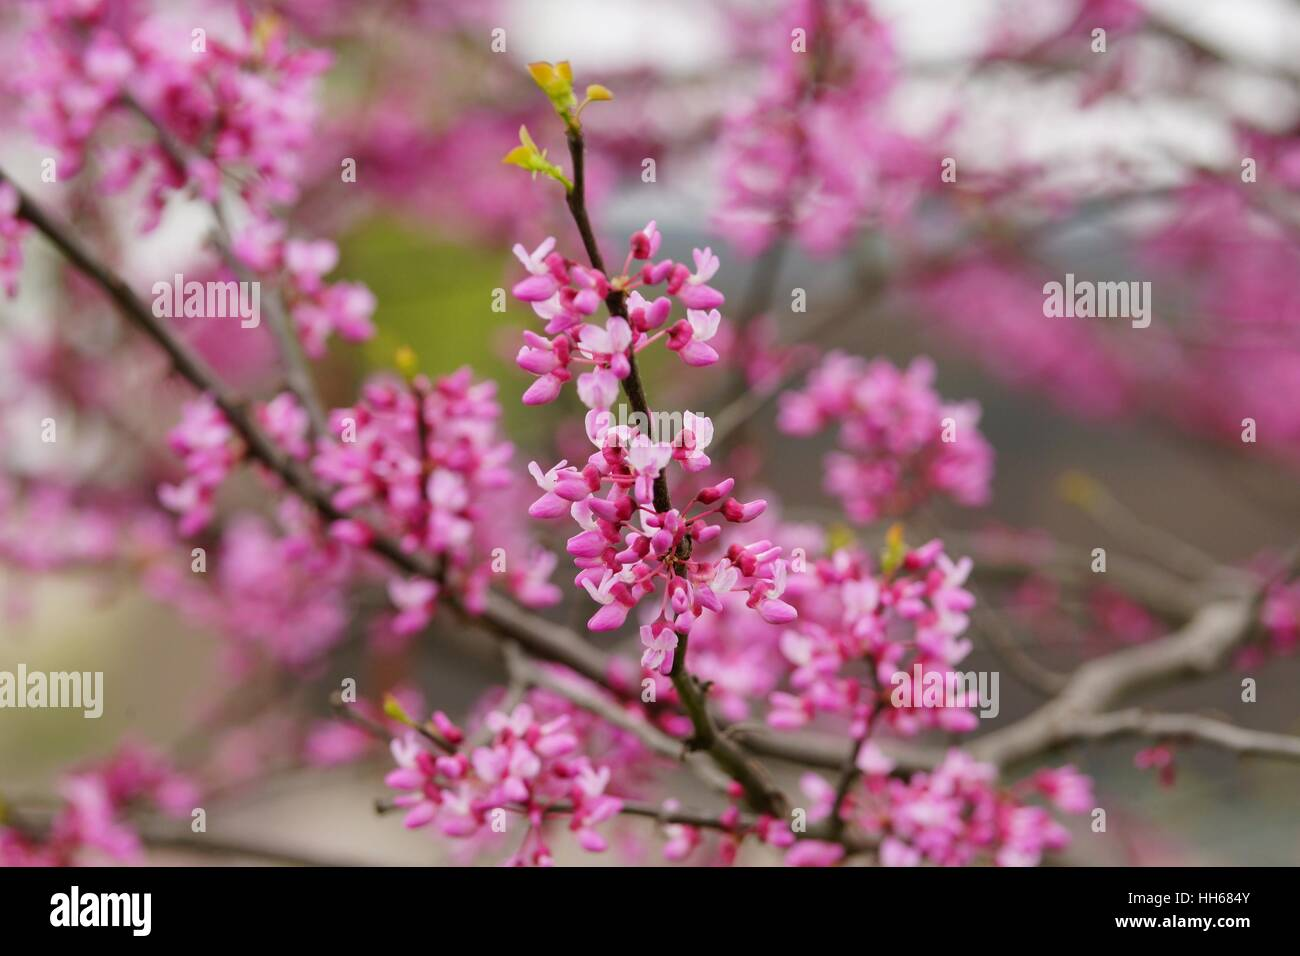 Pink cherry blossom and buds on a twig - Stock Image